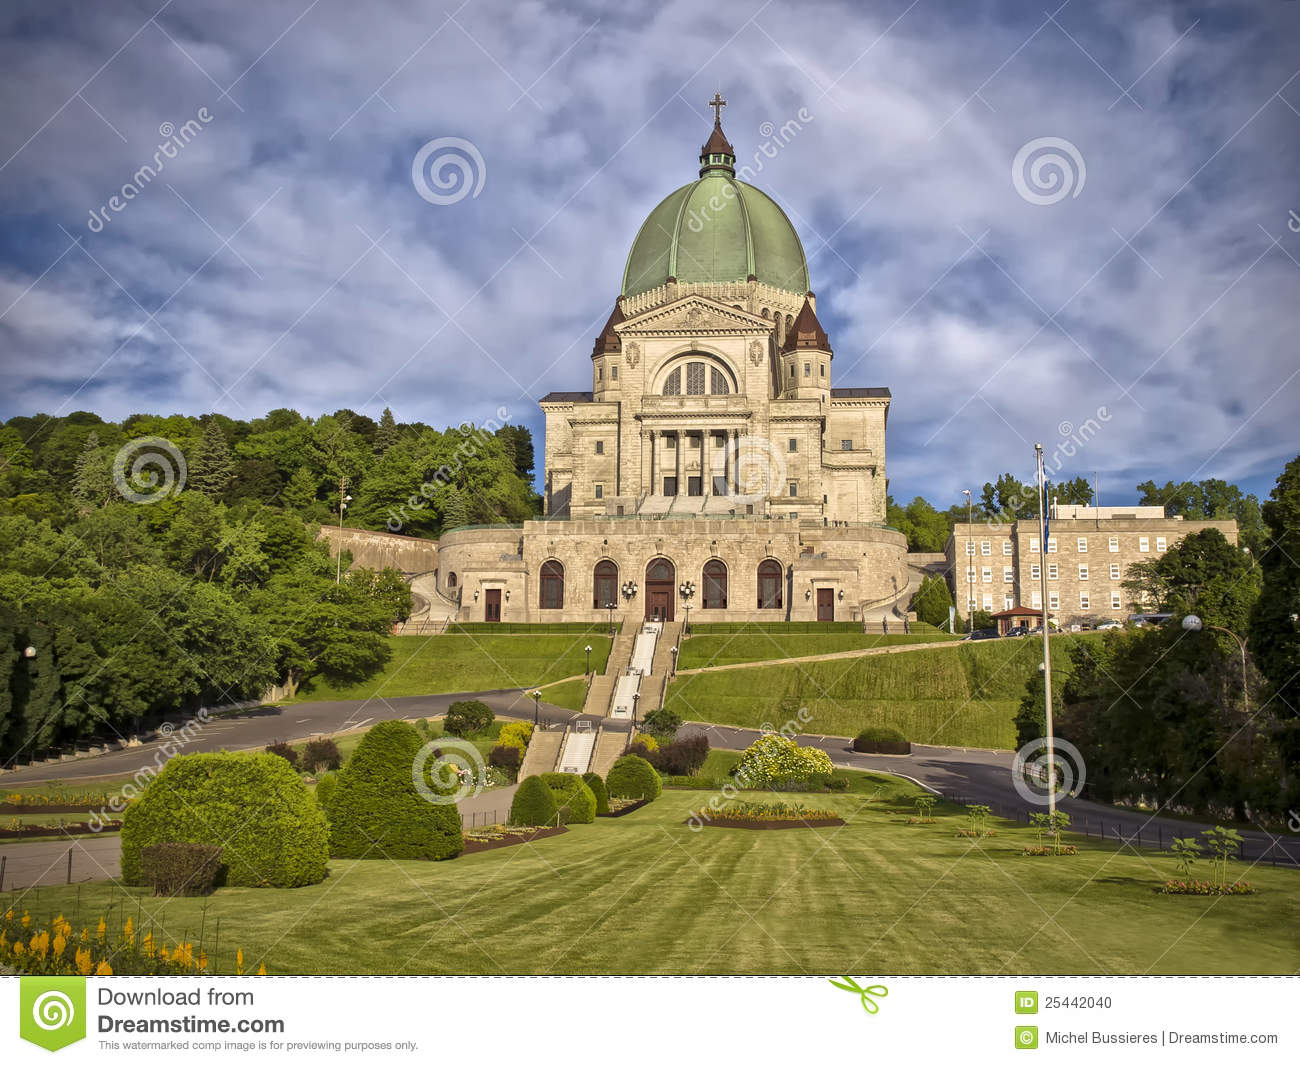 St joseph s oratory is one of the most triumphal pieces of church